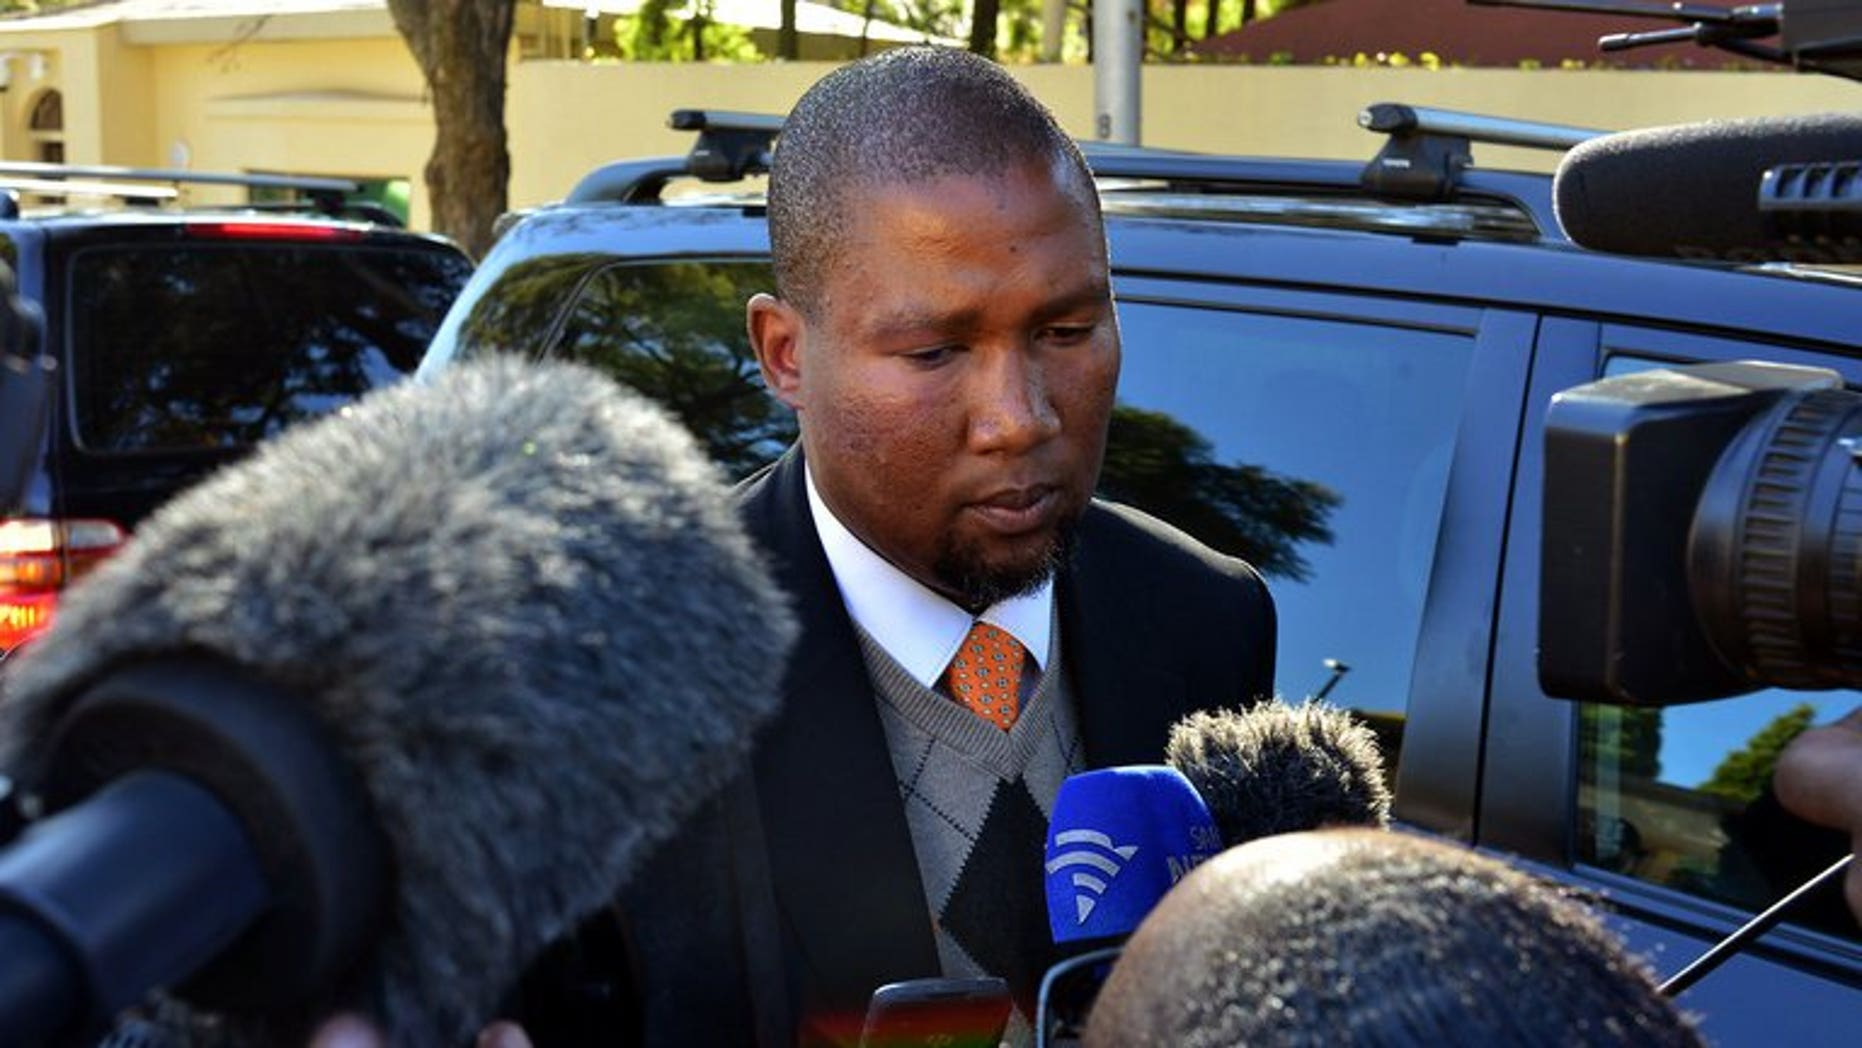 Mandla Mandela addresses the media in Johannesburg on June 12, 2013. A bitter feud within Nelson Mandela's family over the final resting place of the ailing anti-apartheid hero and his children intensified Sunday, with his grandson Mandla lamenting the dispute has been taken to court.